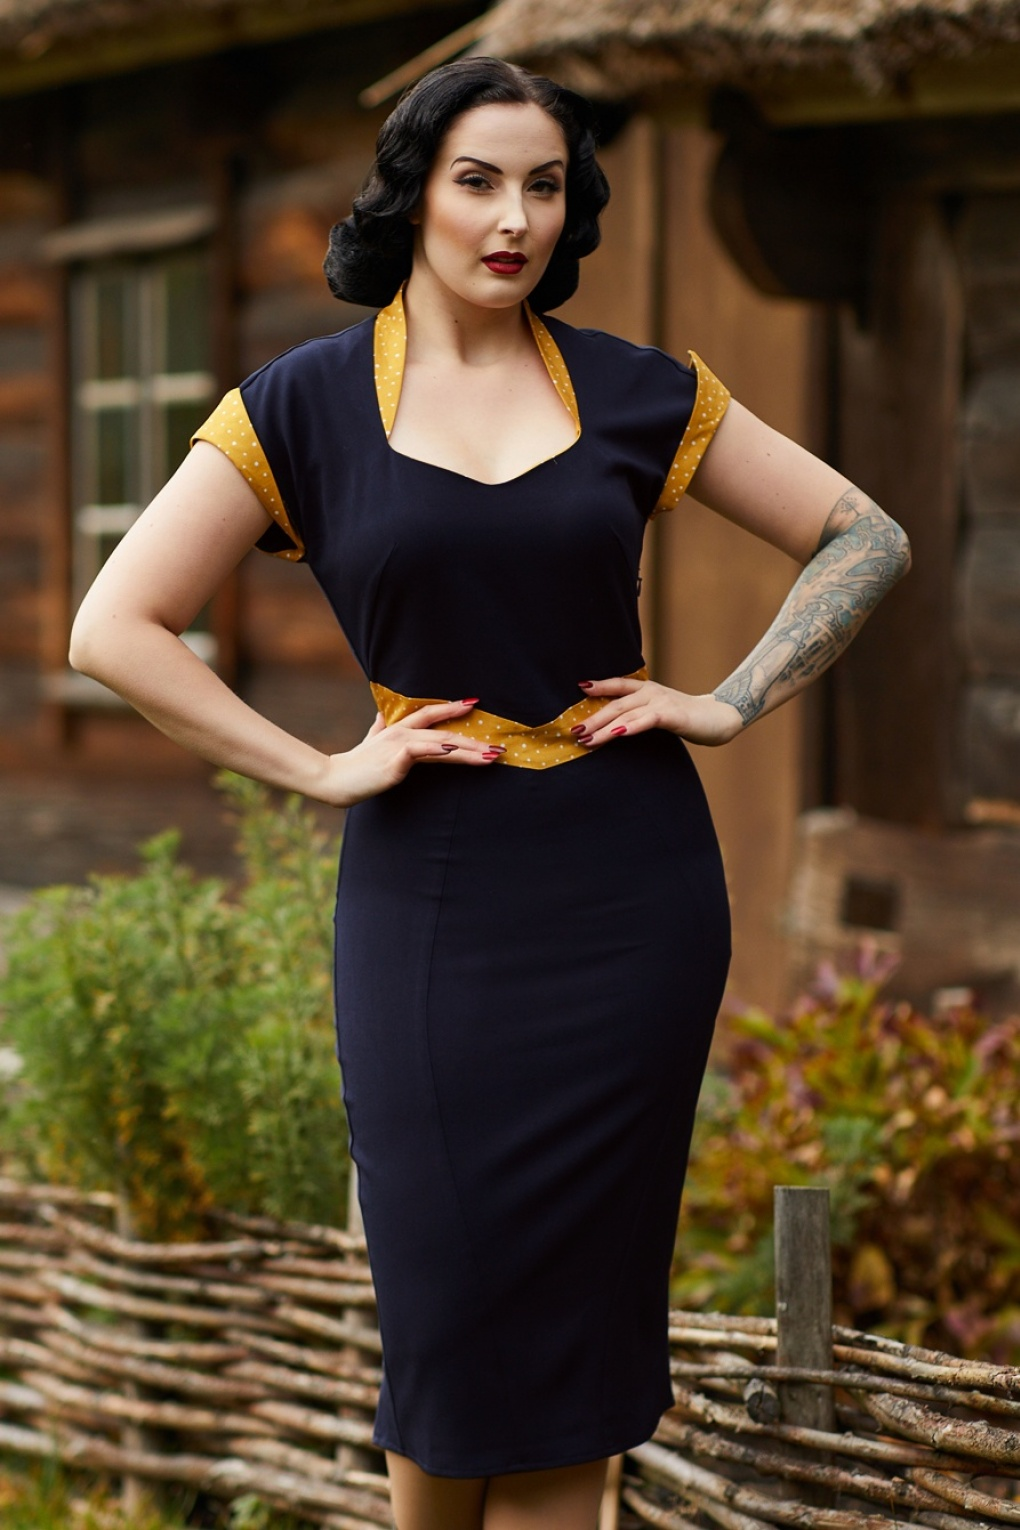 Vintage Cruise Outfits, Vacation Clothing 50s Tremaine Lee Wiggle Dress in Navy and Yellow �91.58 AT vintagedancer.com